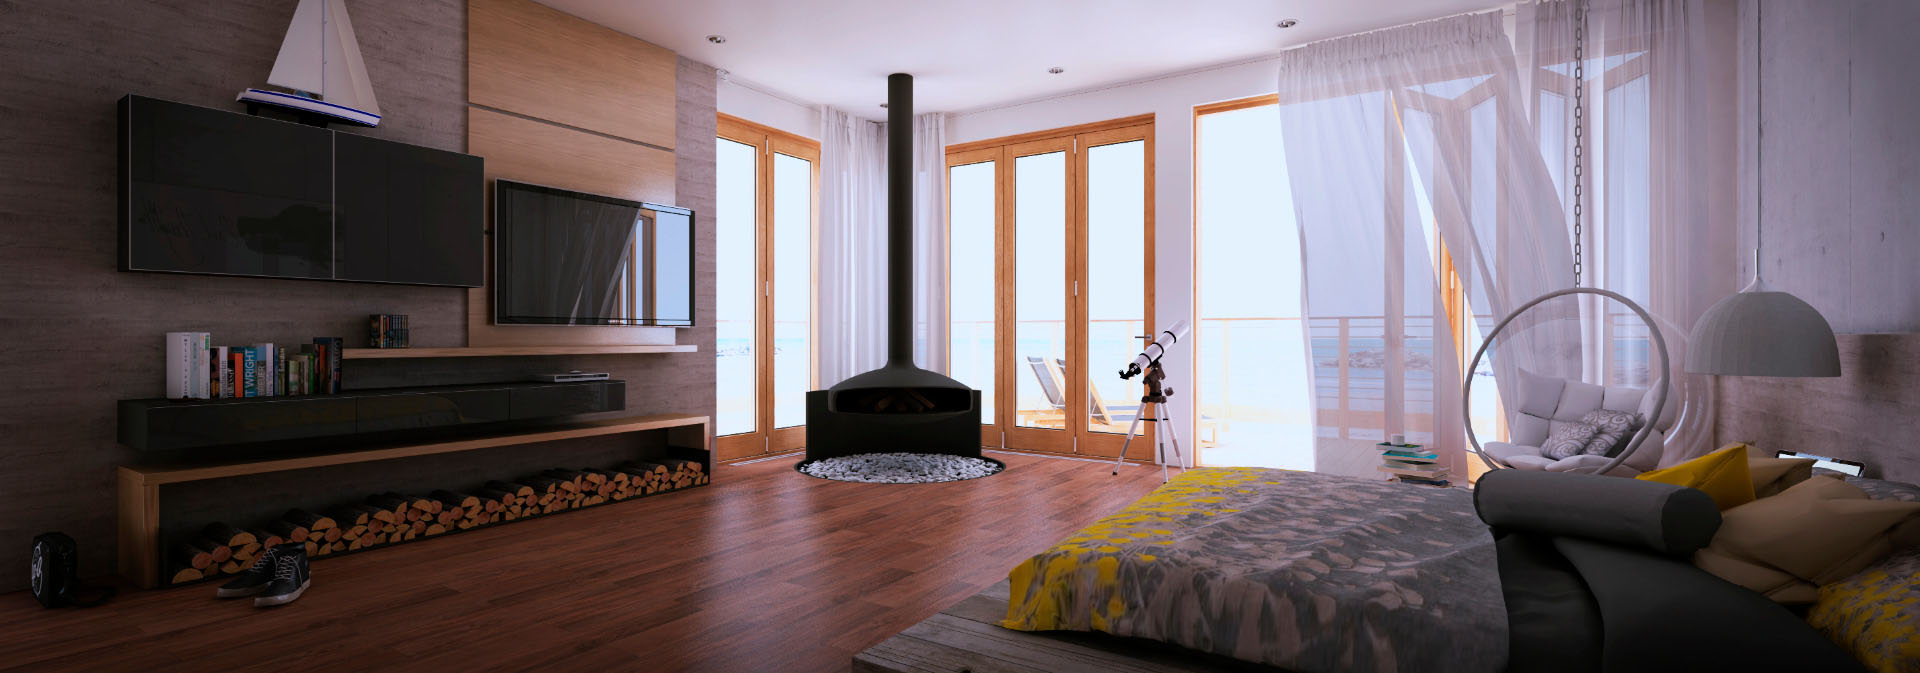 A mid-century bedroom Rendered by Sebastien Raiche in SU Podium